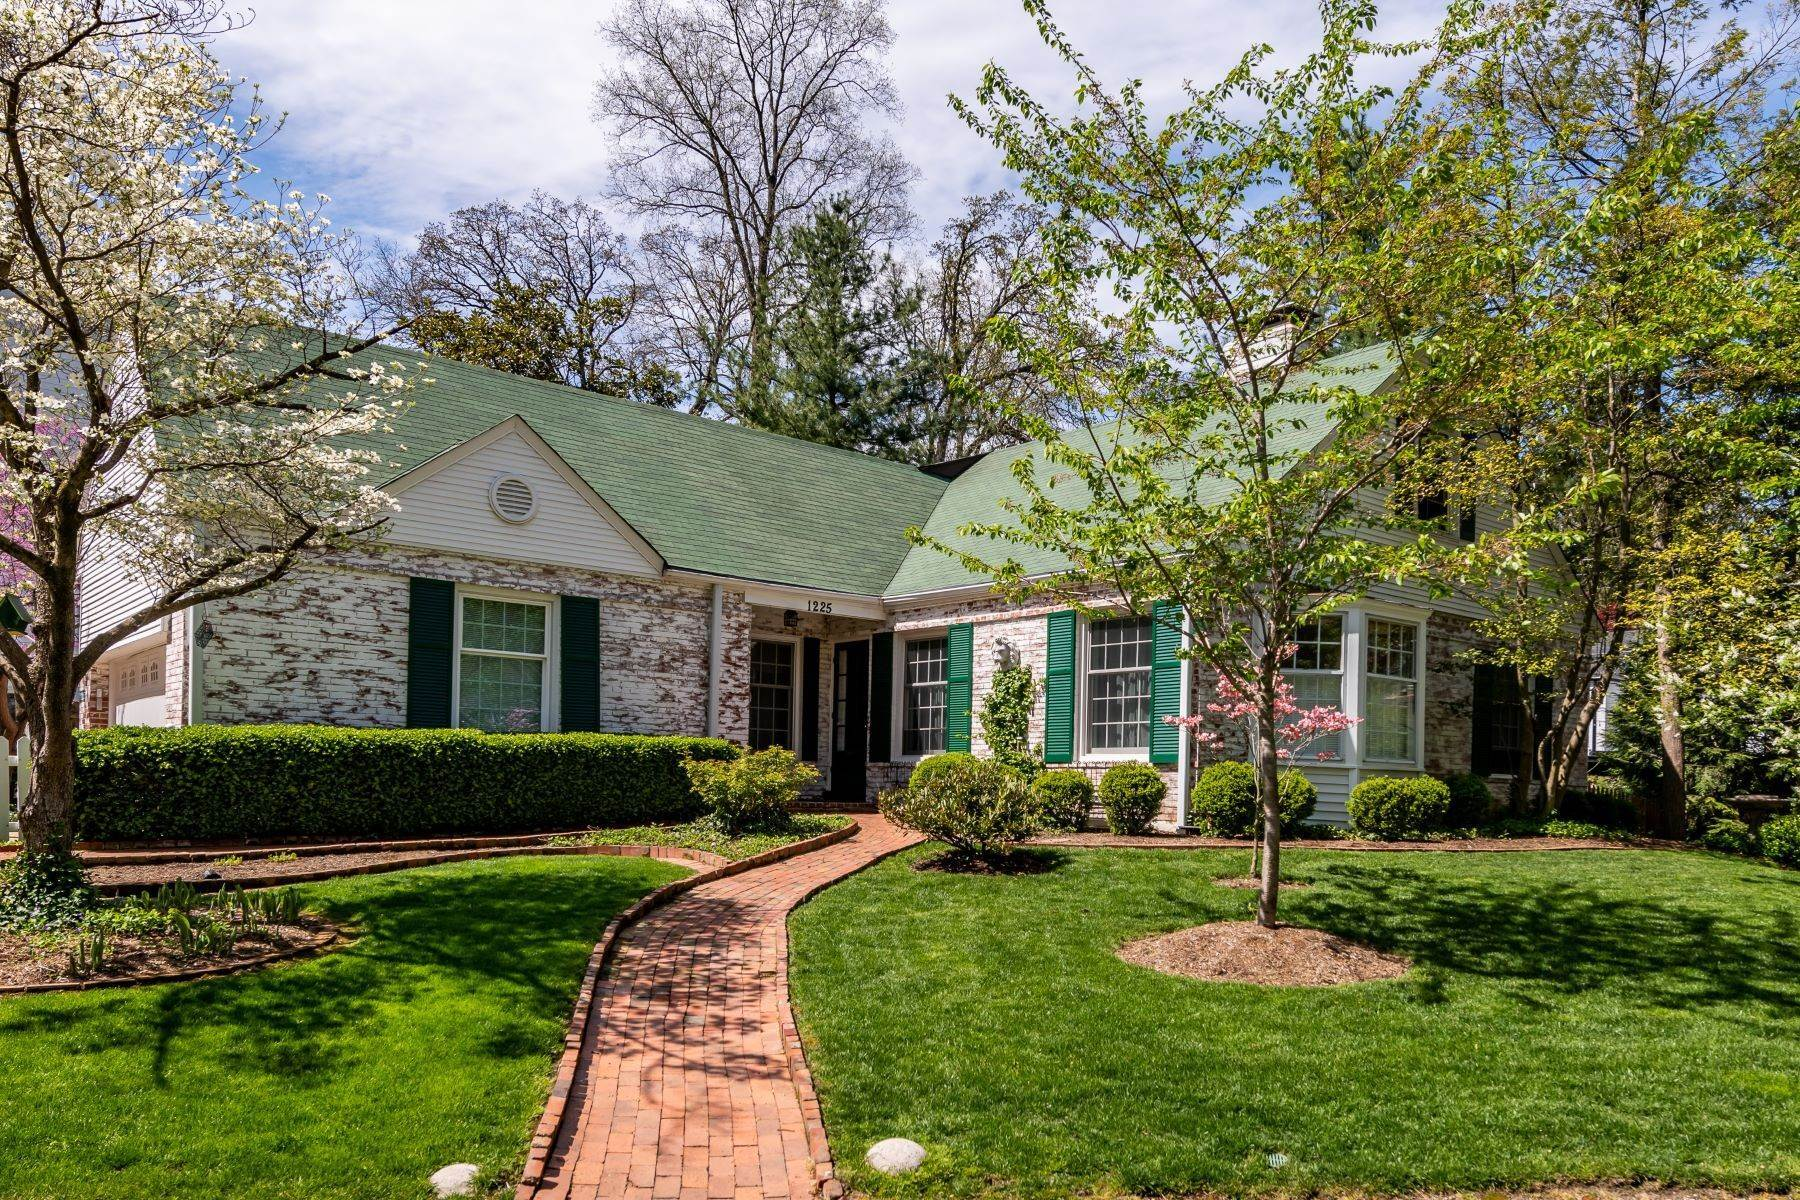 Property for Sale at Charming Warson Woods Home 1225 Warson Woods Drive Warson Woods, Missouri 63122 United States